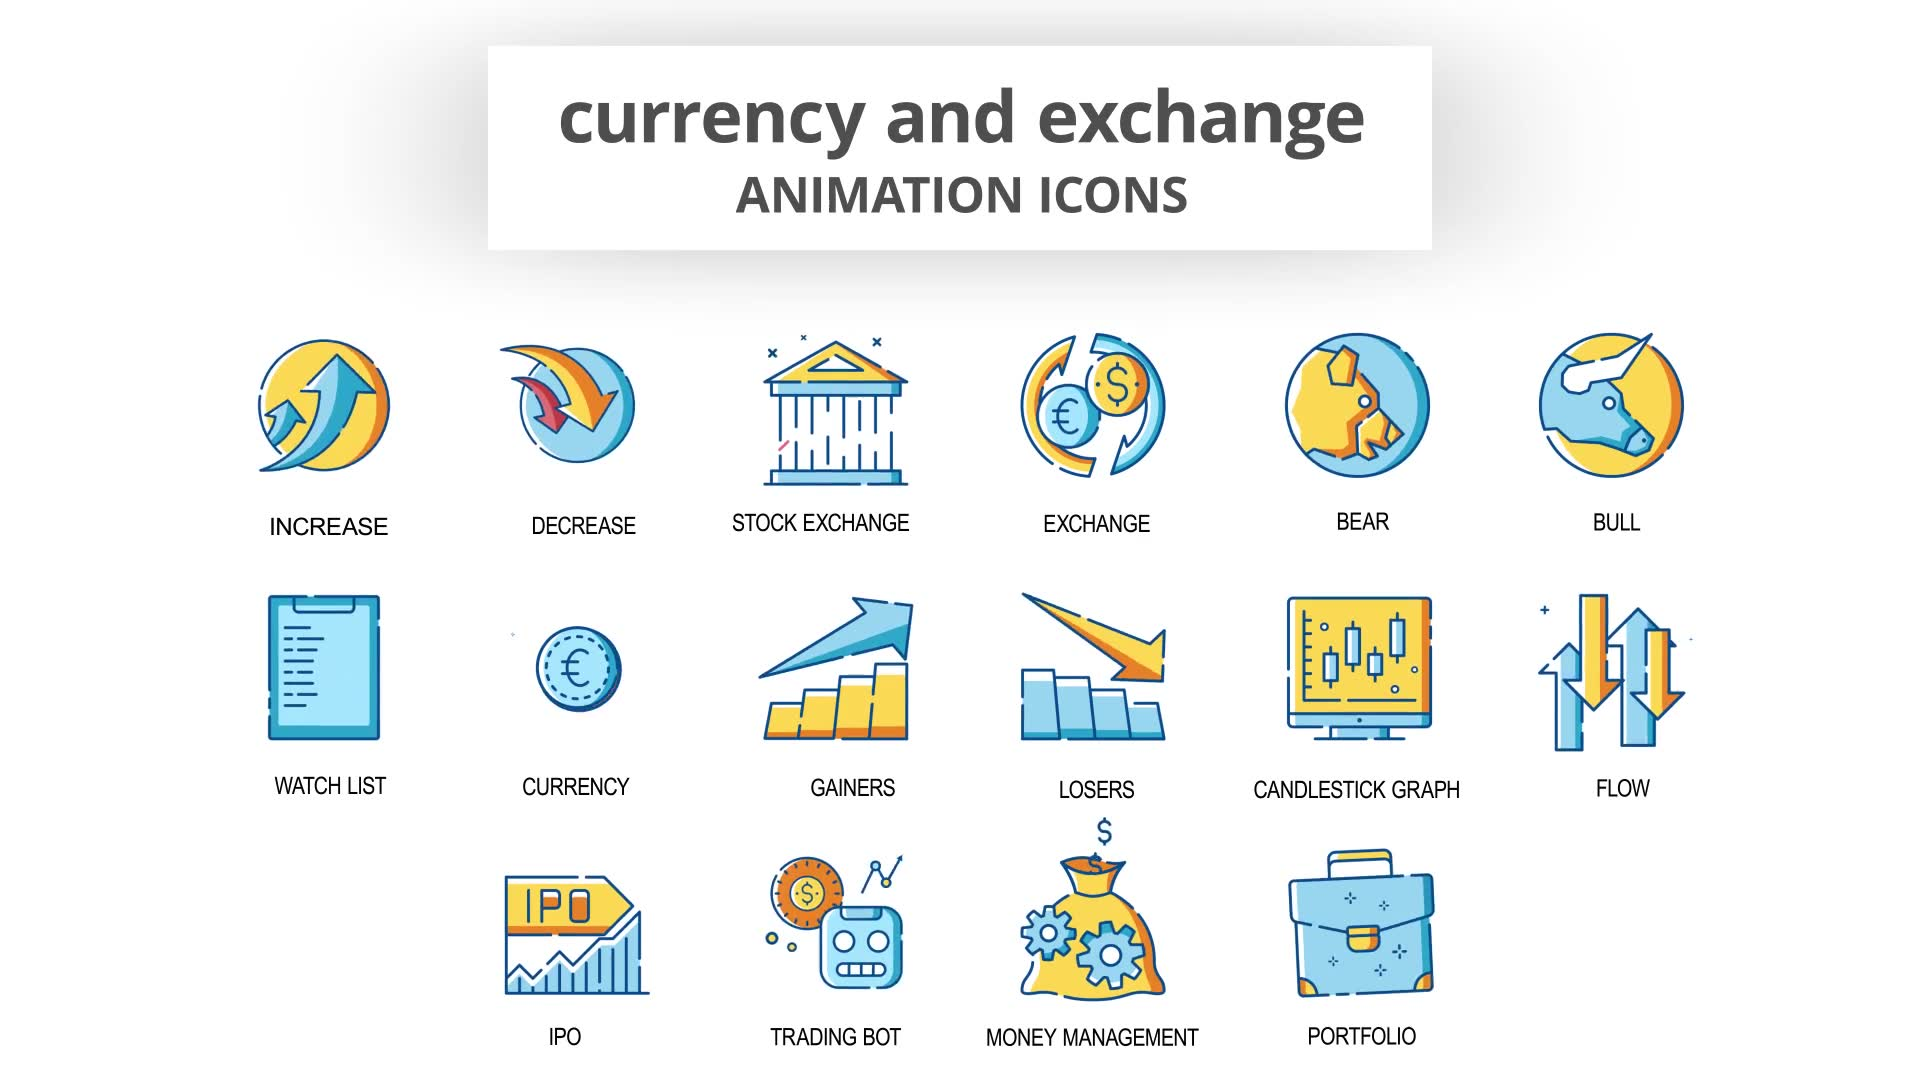 Currency & Exchange Animation Icons Videohive 30260825 After Effects Image 6